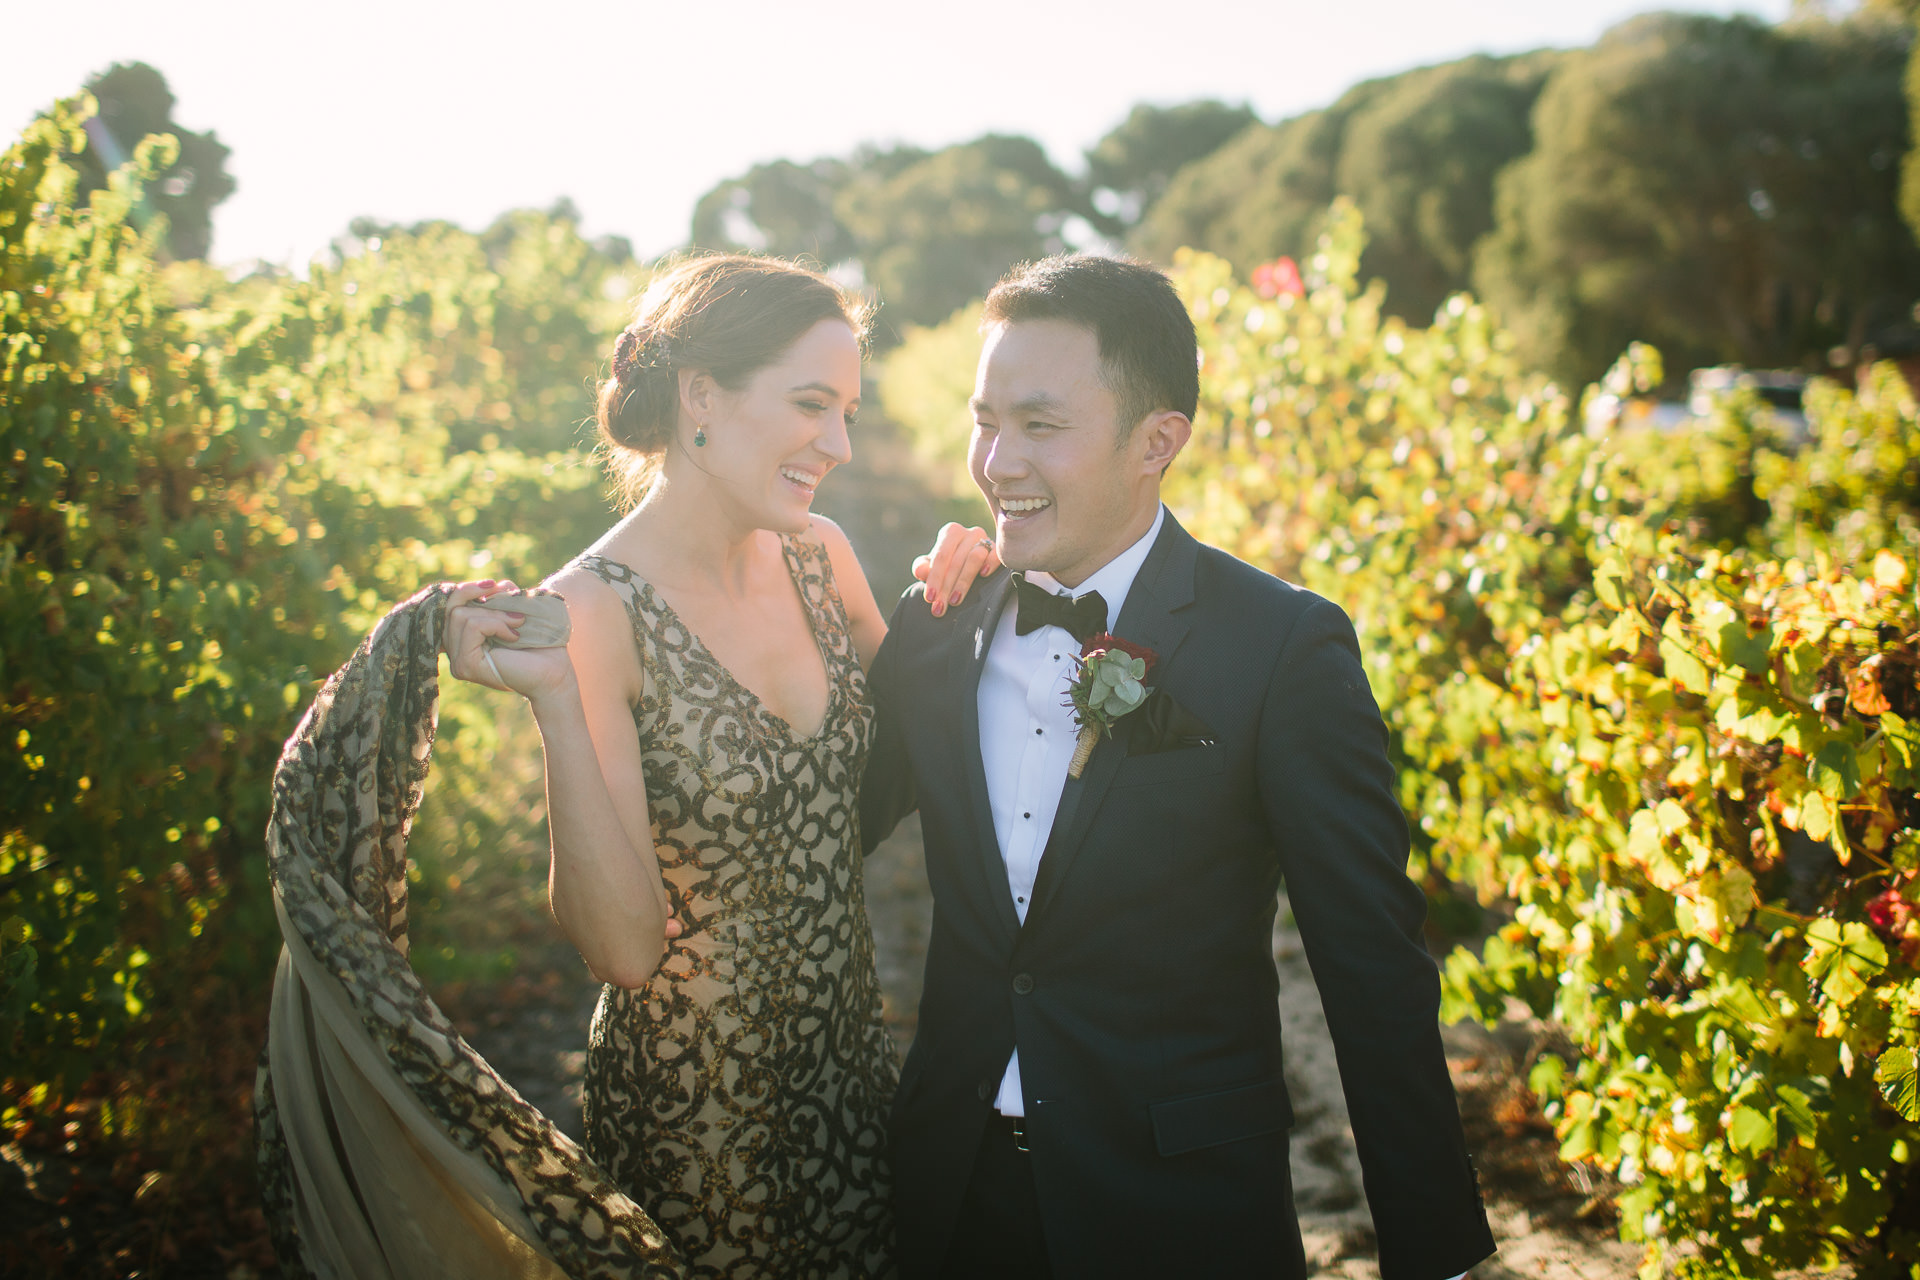 Bride and groom laugh together in Vineyard at One Paddock wedding